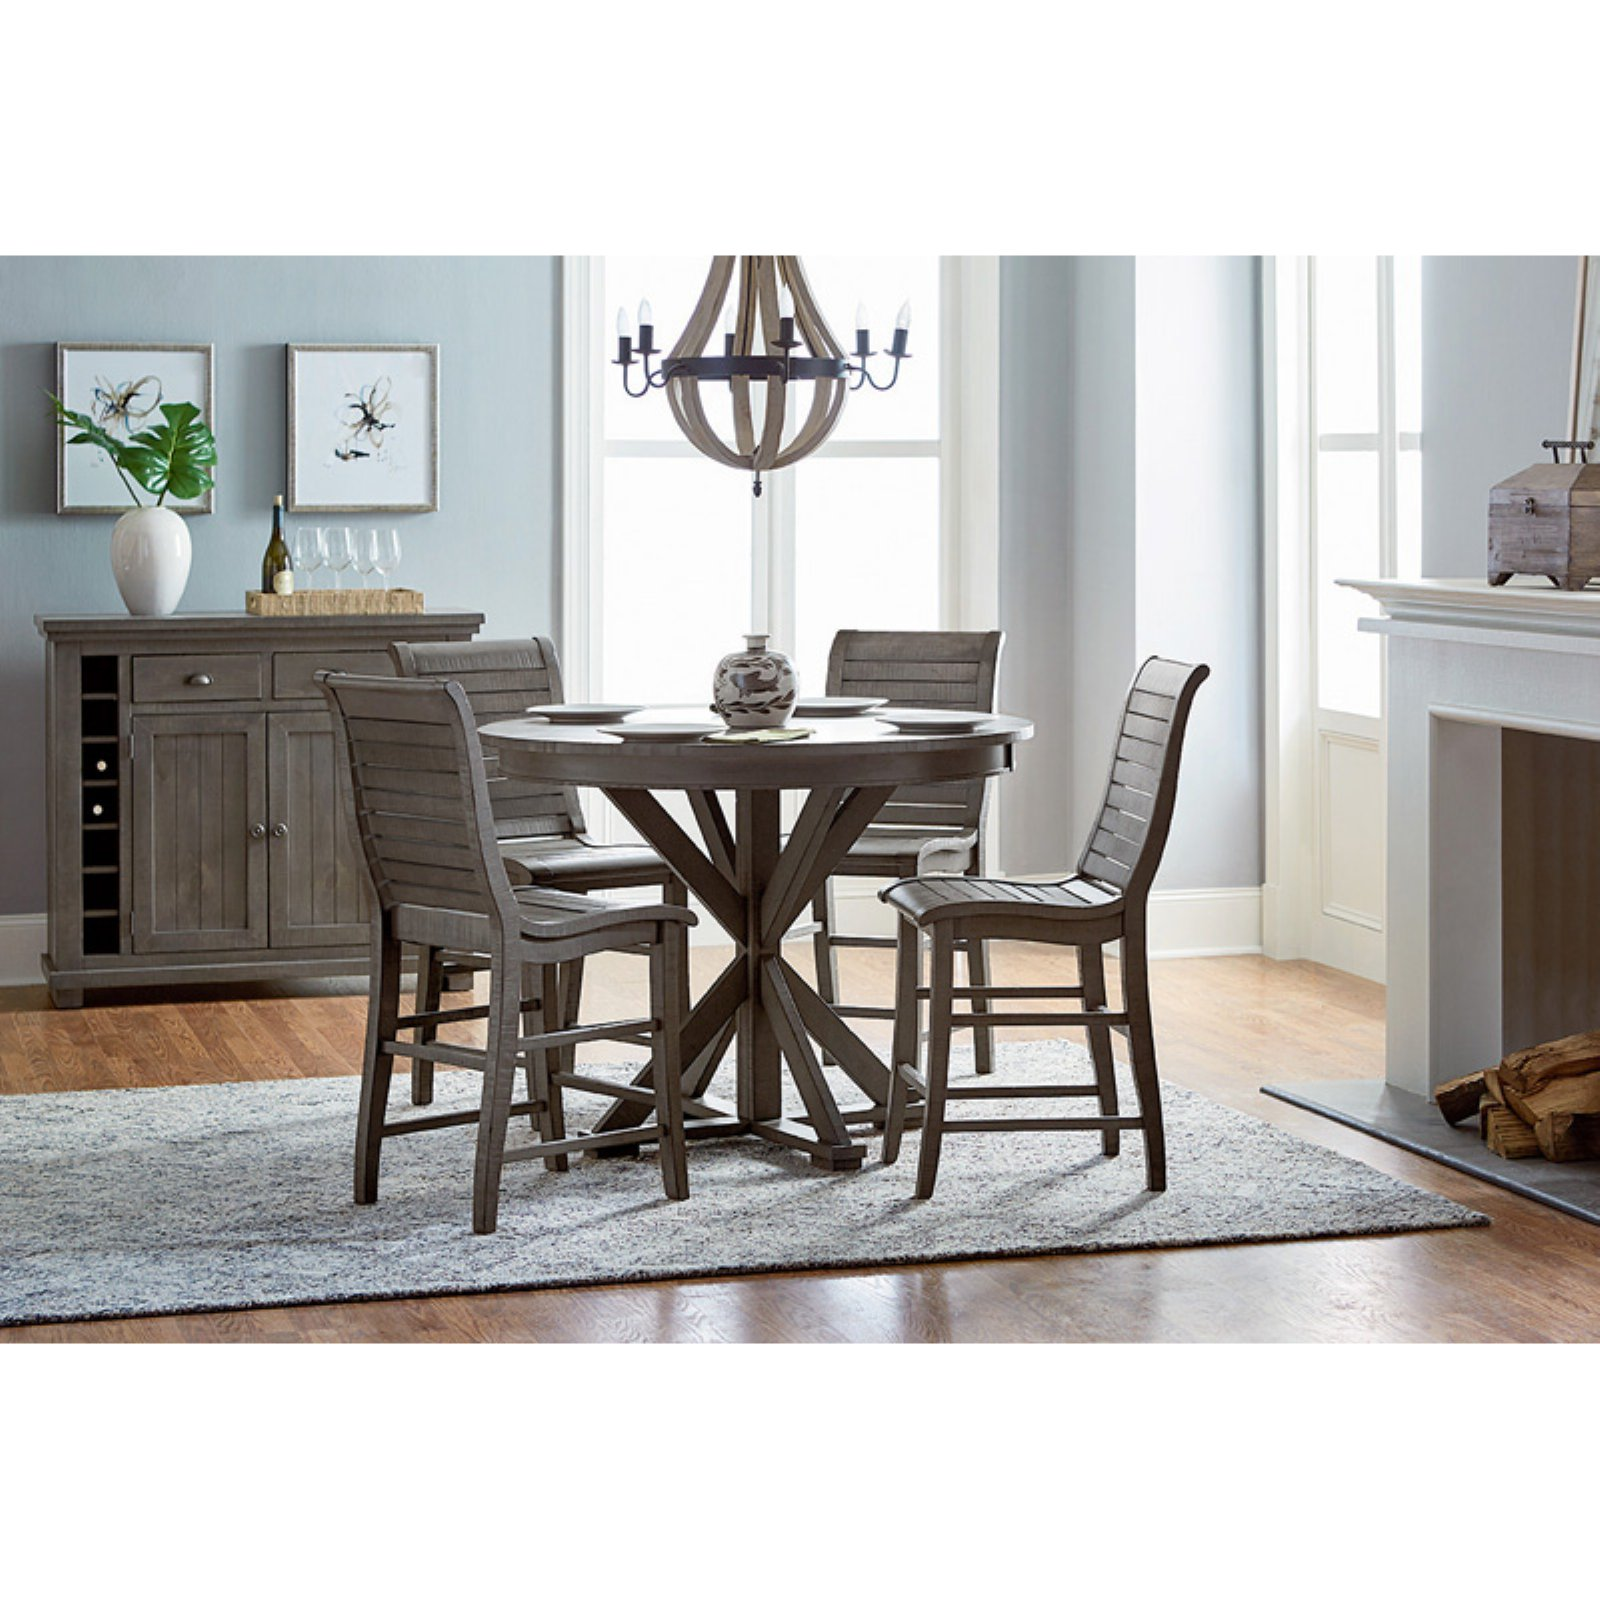 Progressive Furniture Willow Round Counter Table